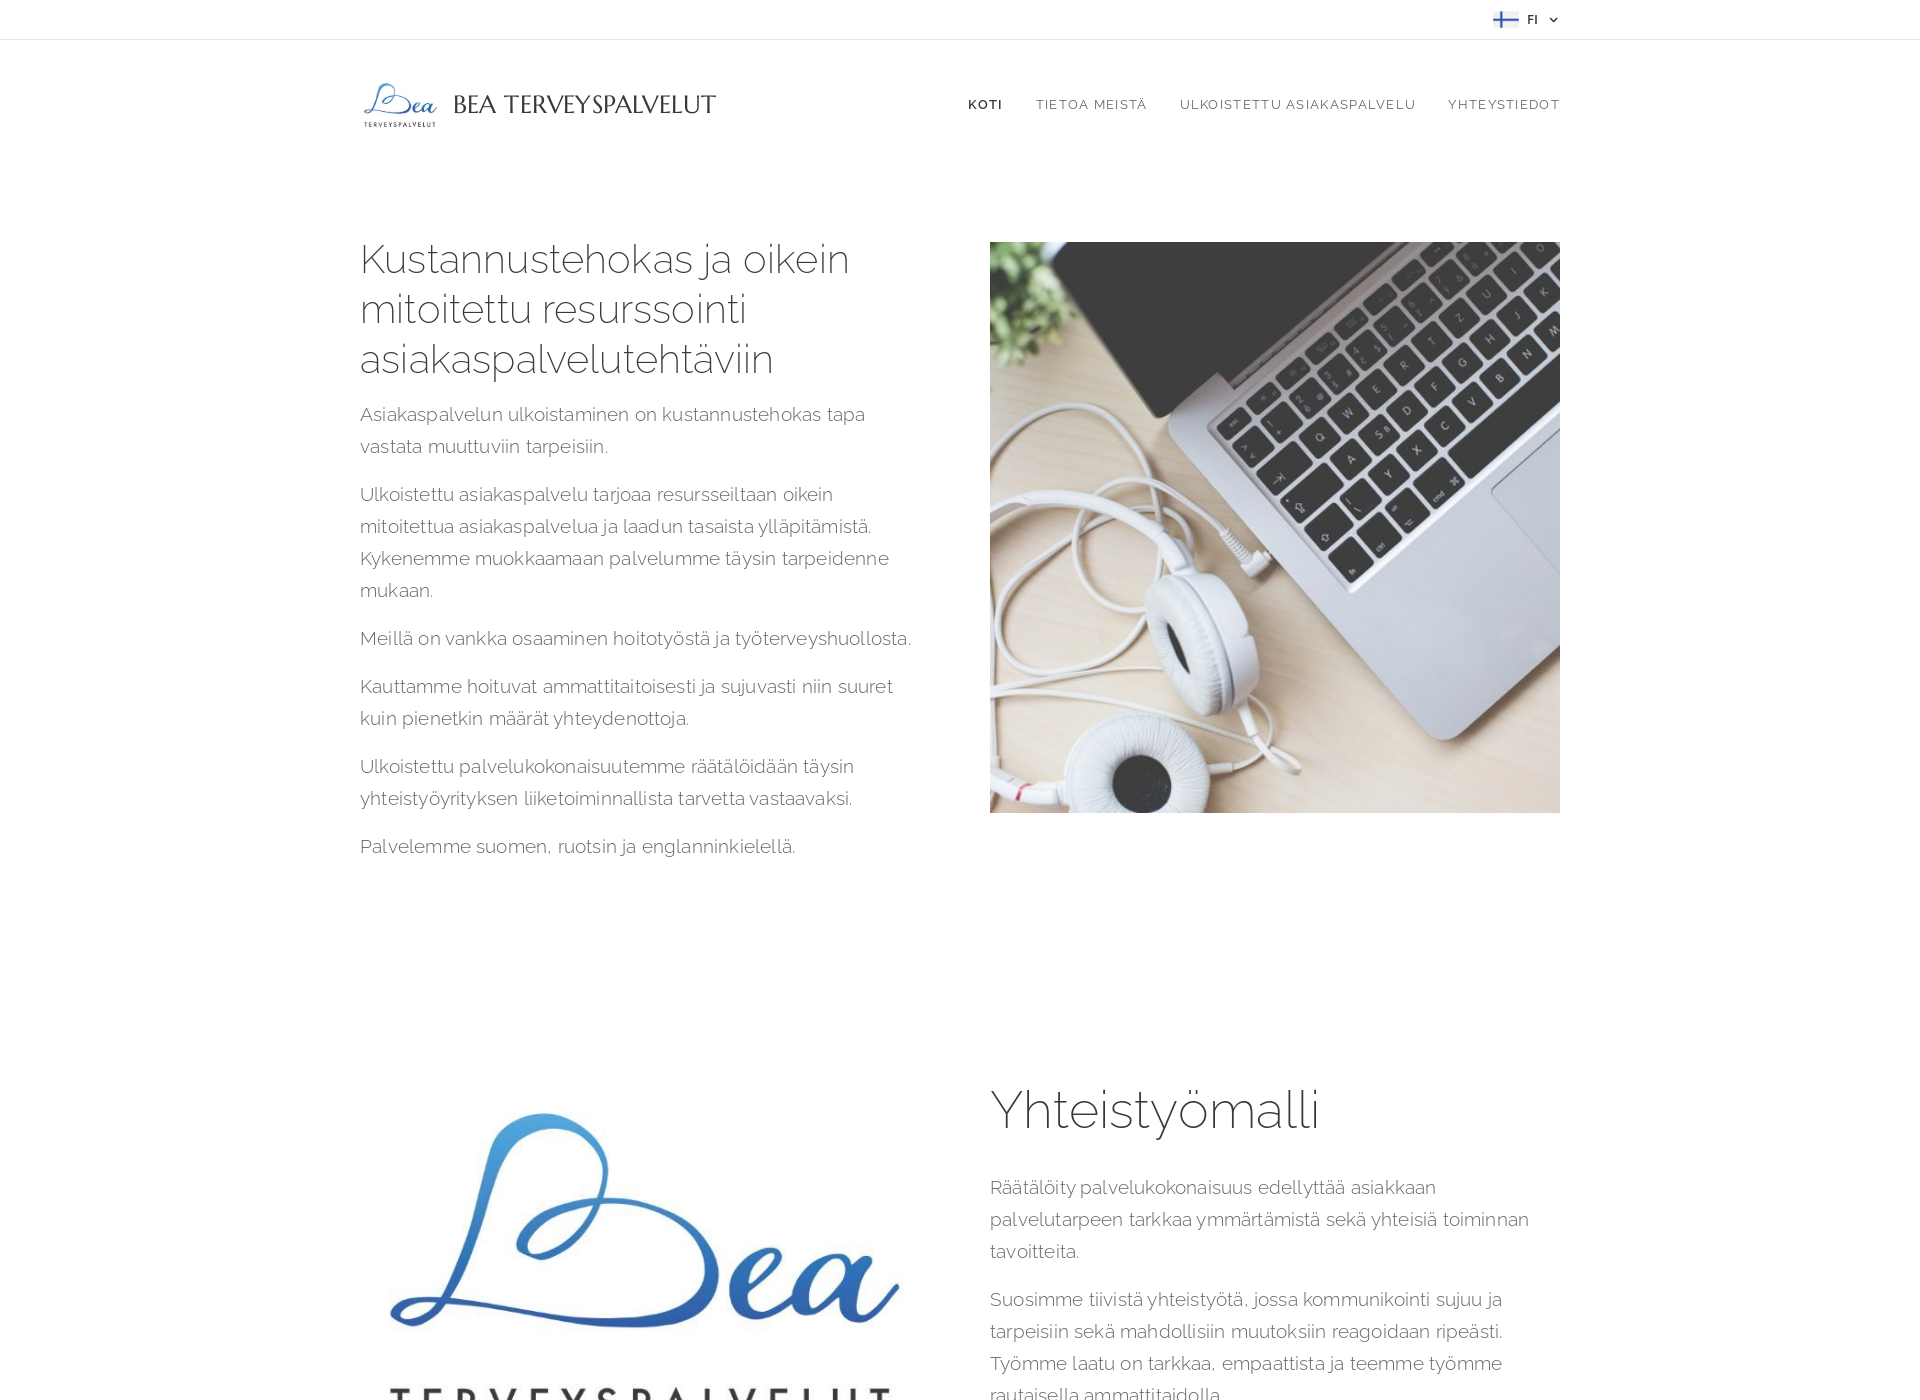 Screenshot for beaterveys.fi